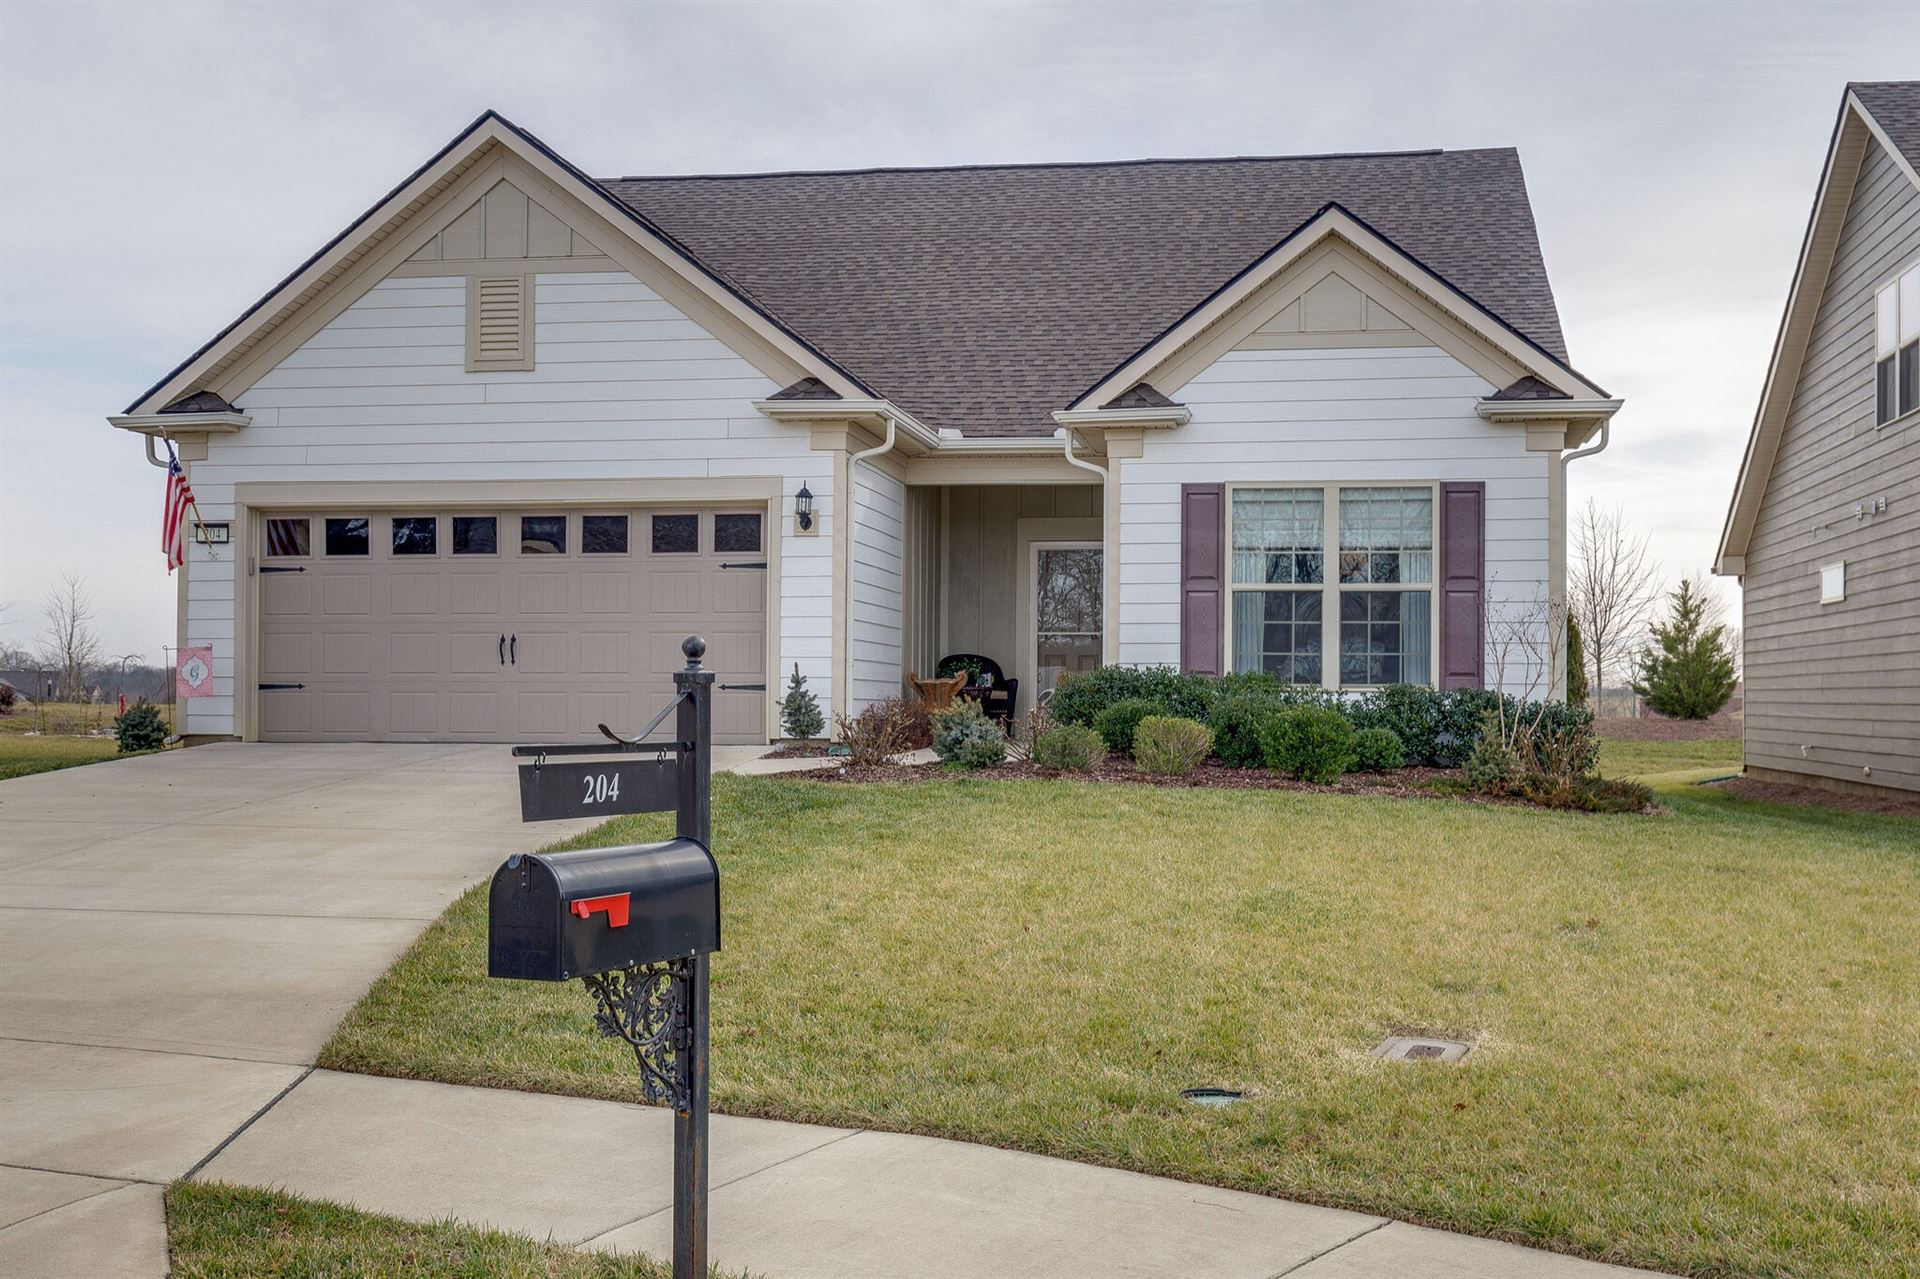 Photo of 204 Carter Ct, Spring Hill, TN 37174 (MLS # 2217391)